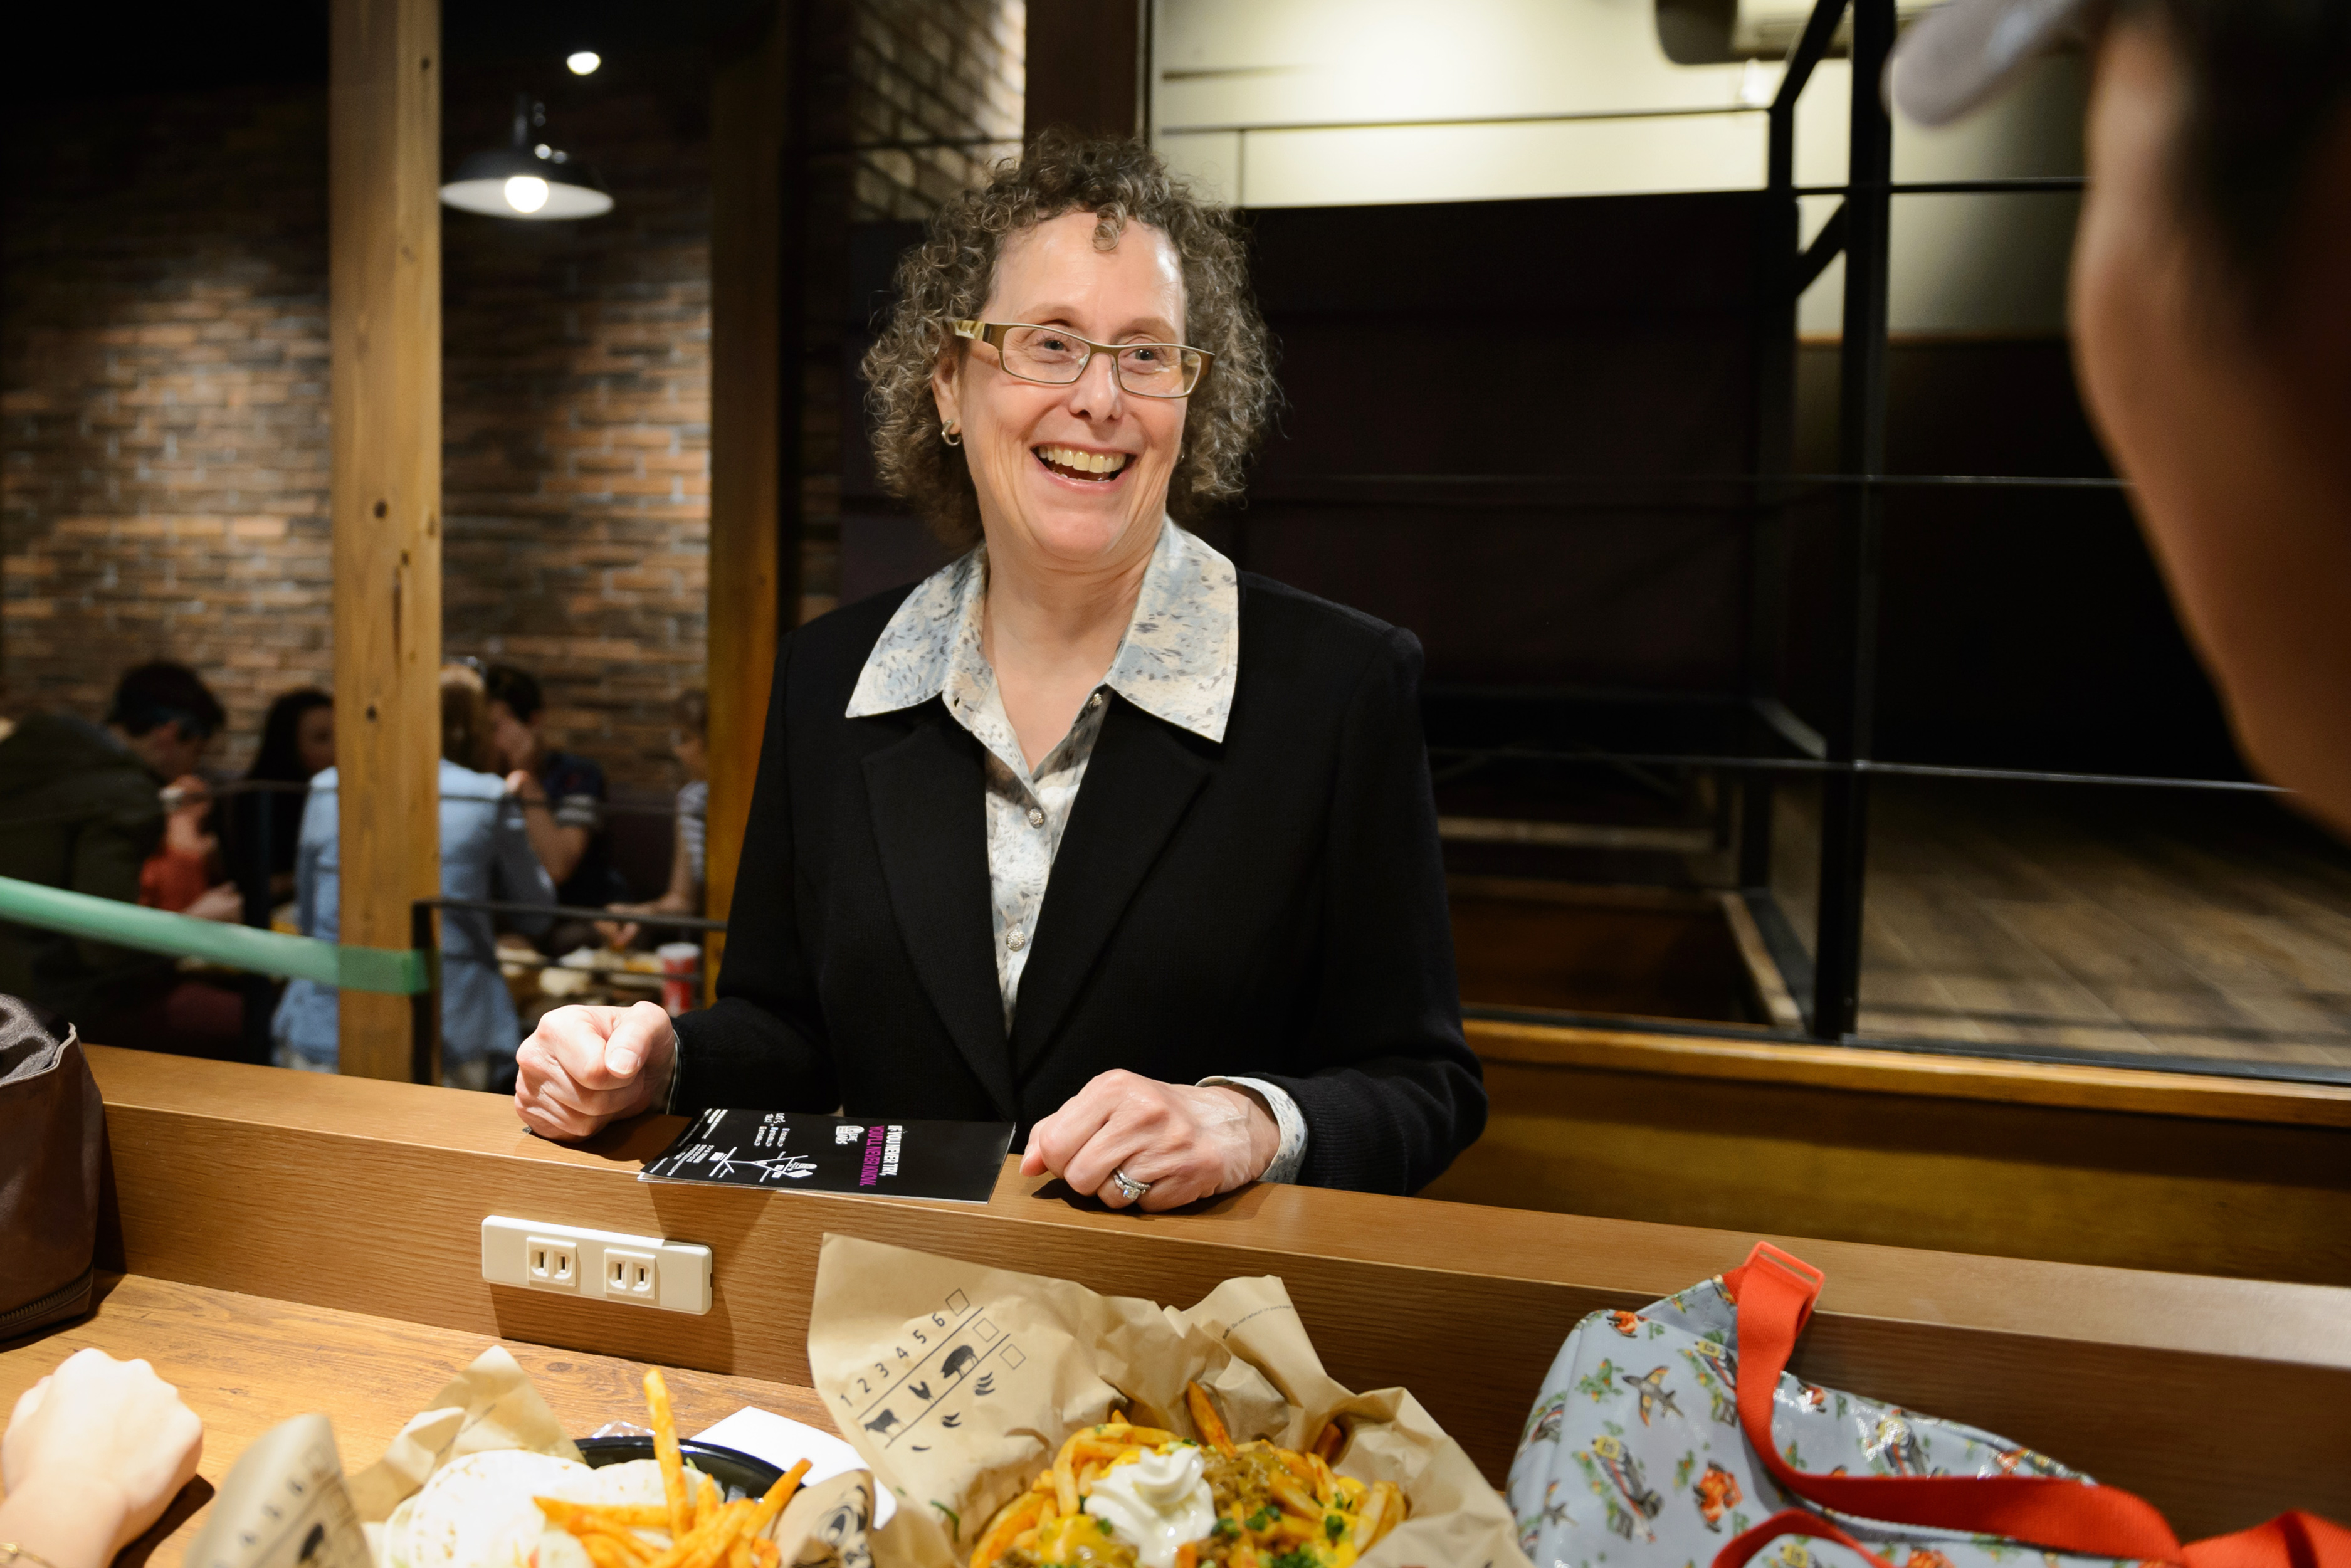 Taco Bell International President Melissa Lora Interview As The Yum! Brands Inc. Restaurant Set To Open First Store In Japan